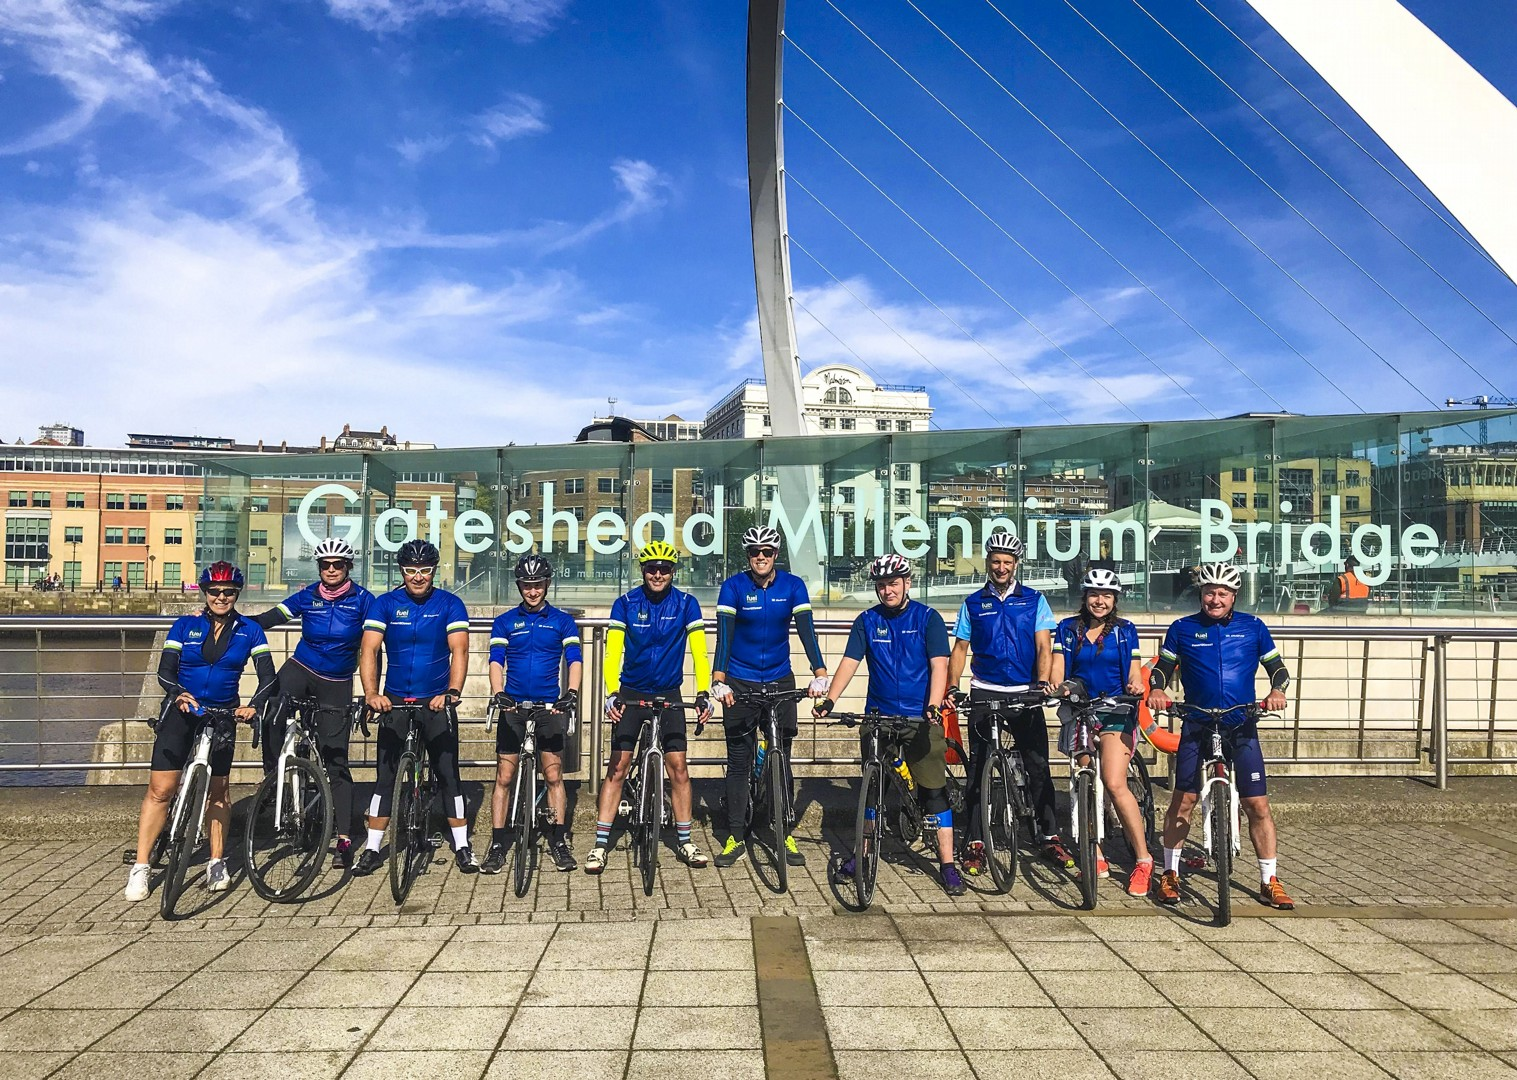 newcastle-cycling-tour-from-whitehaven-self-guided-5-days.jpg - UK - C2C - Coast to Coast 5 Days Cycling - Self-Guided Leisure Cycling Holiday - Leisure Cycling